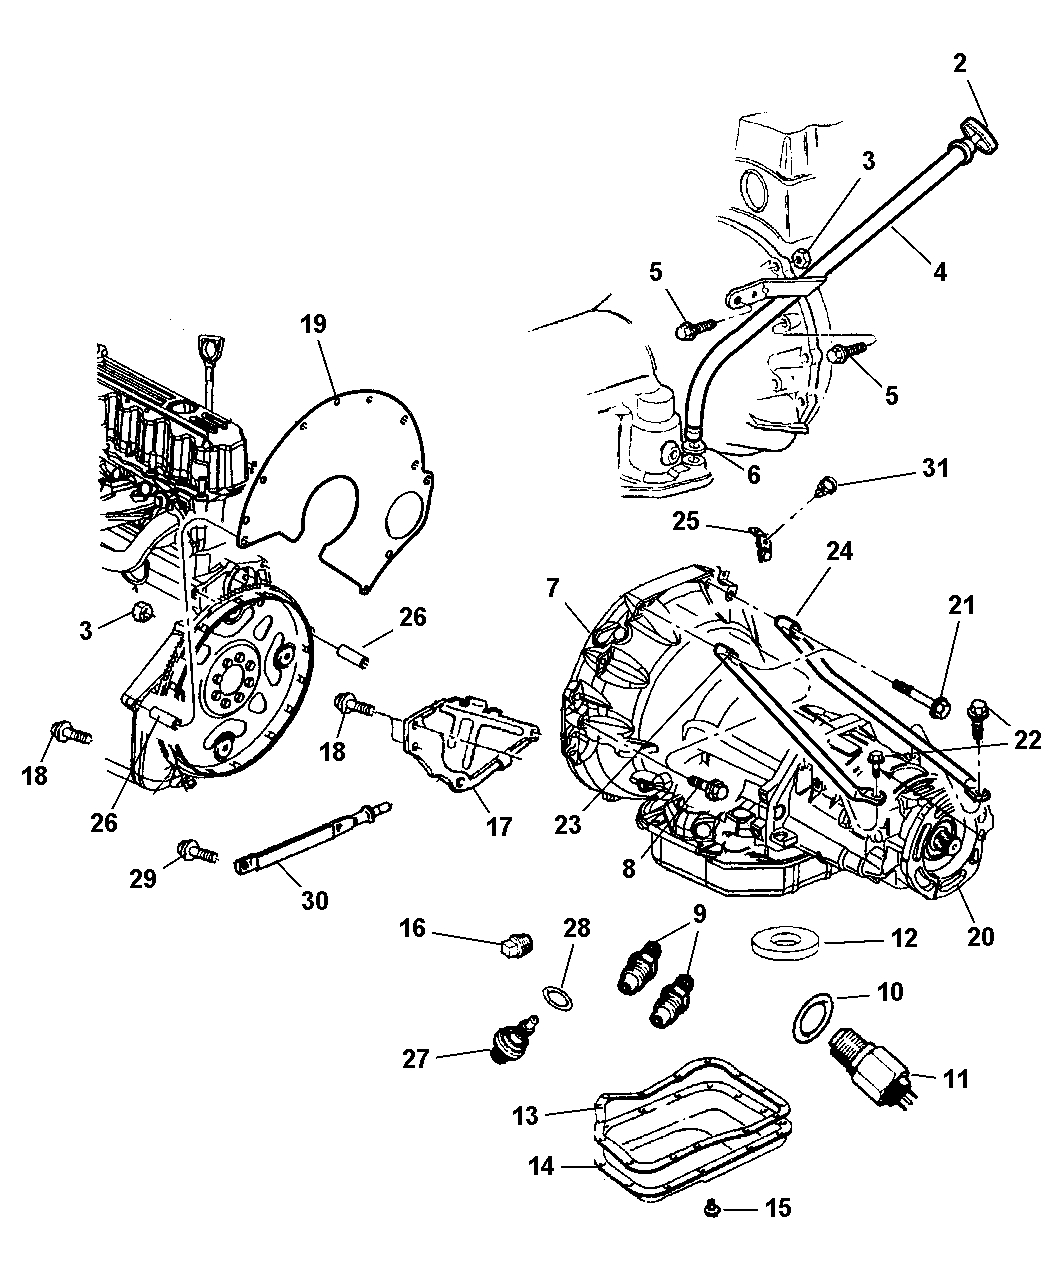 Jeep Wrangler Engine Diagram